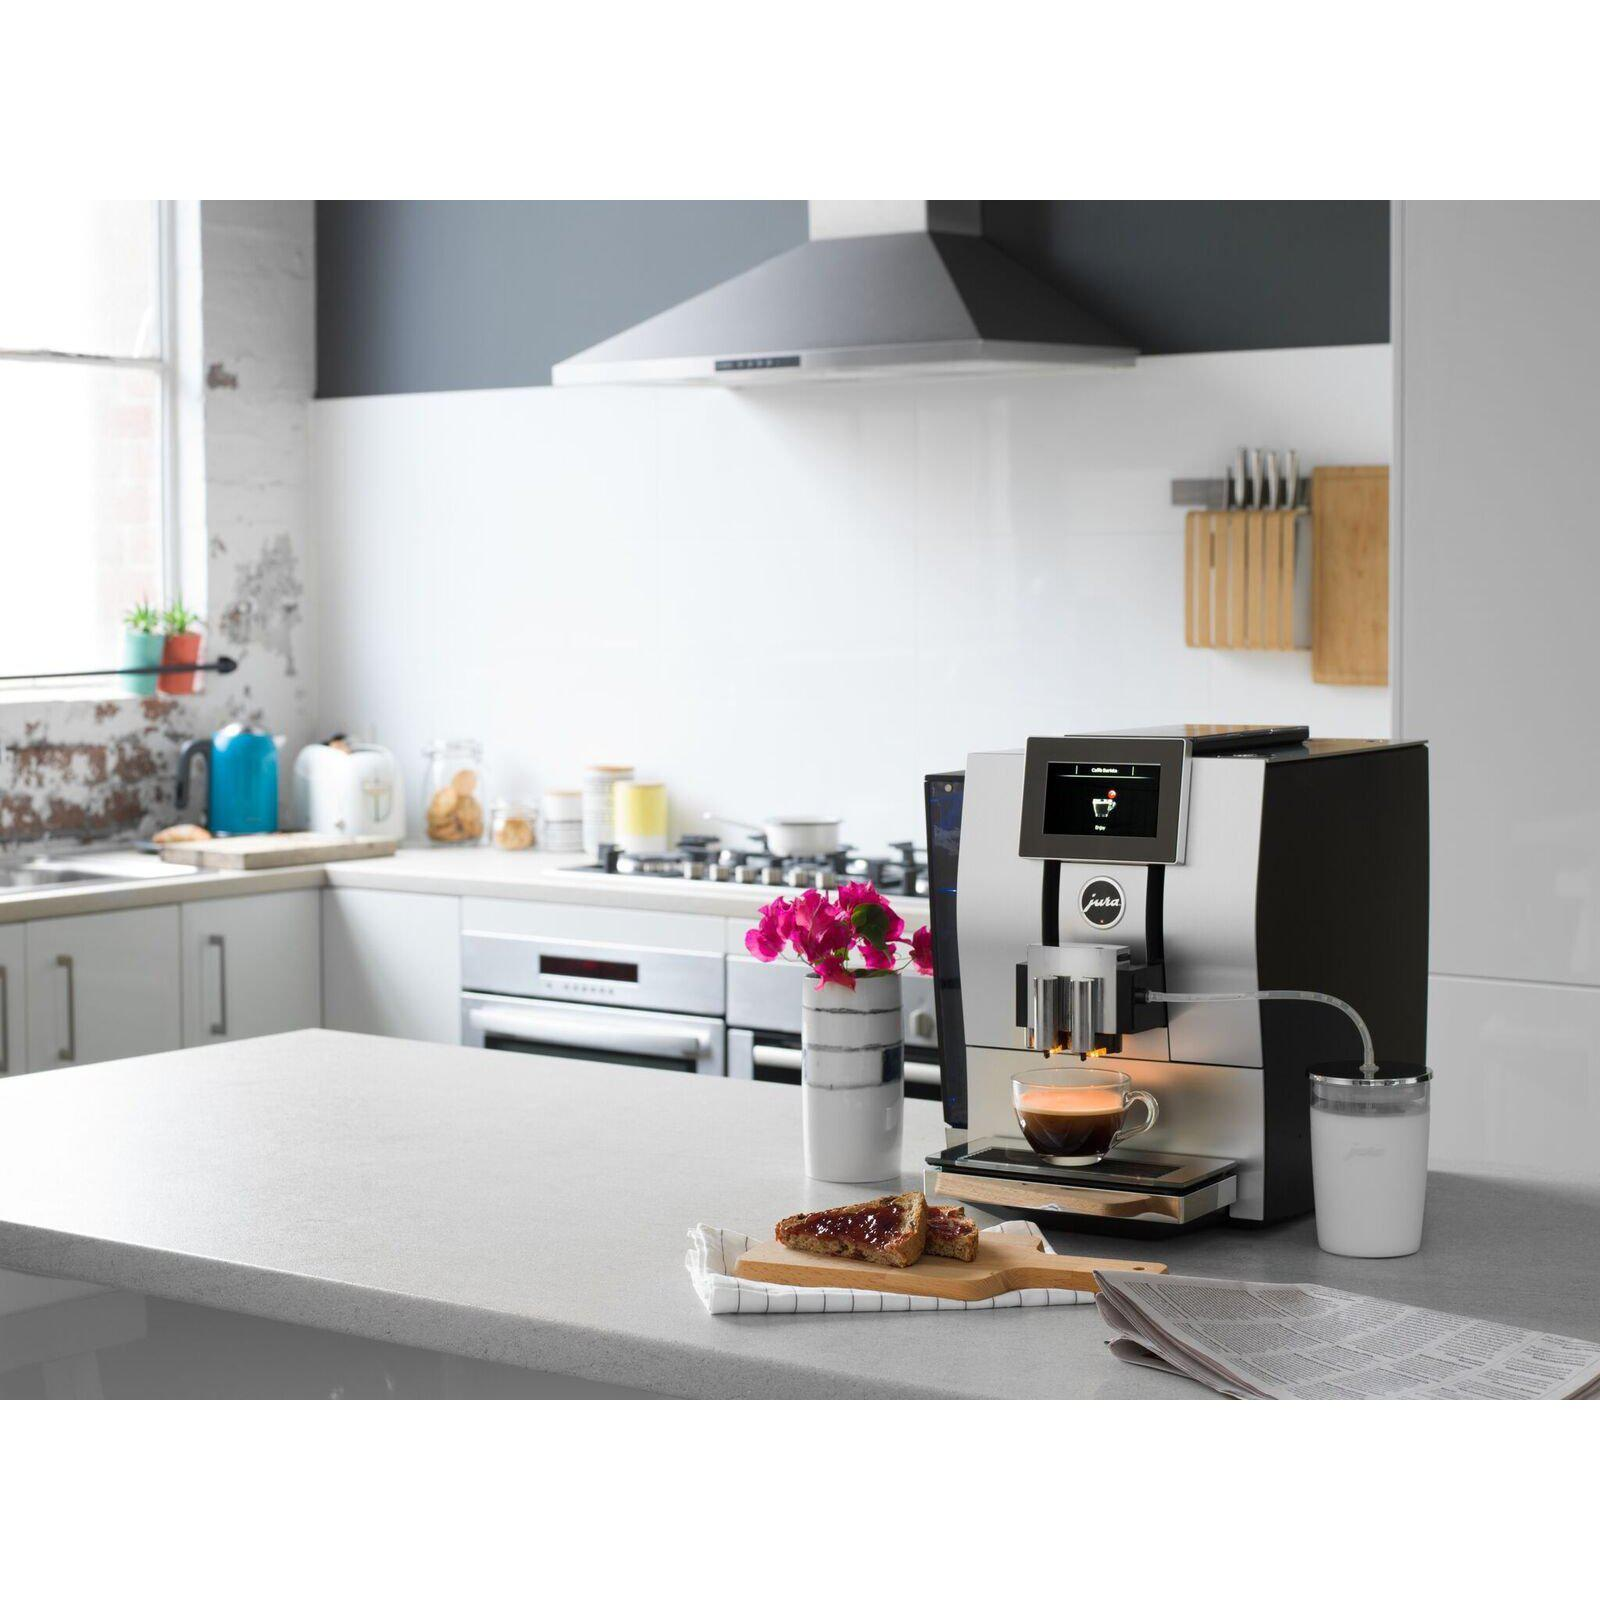 Jura Z8 Super Automatic OTC Espresso Machine